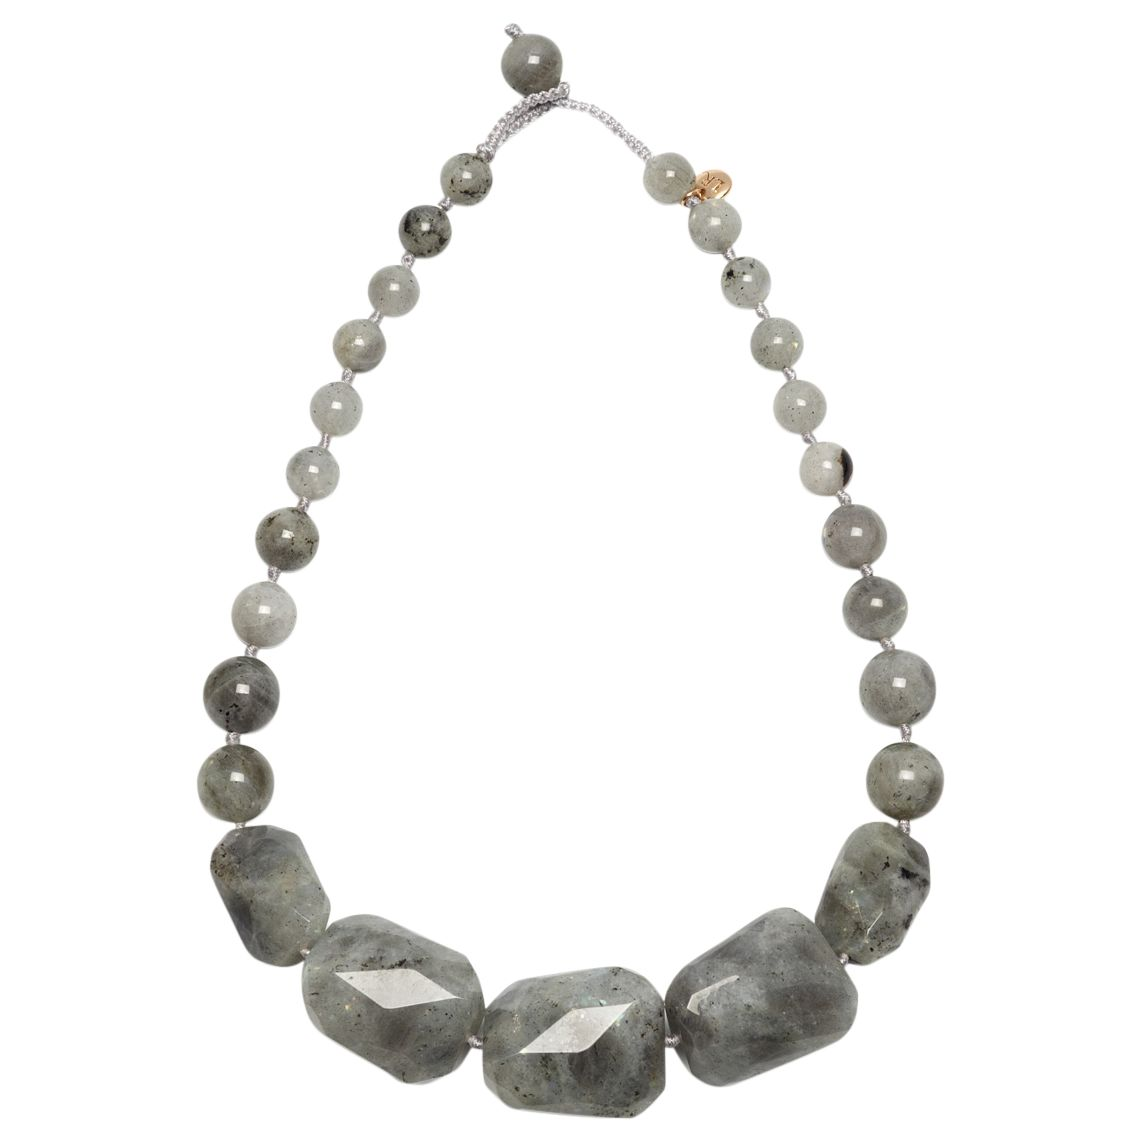 Lola Rose Lola Rose Ari Necklace, Labradorite